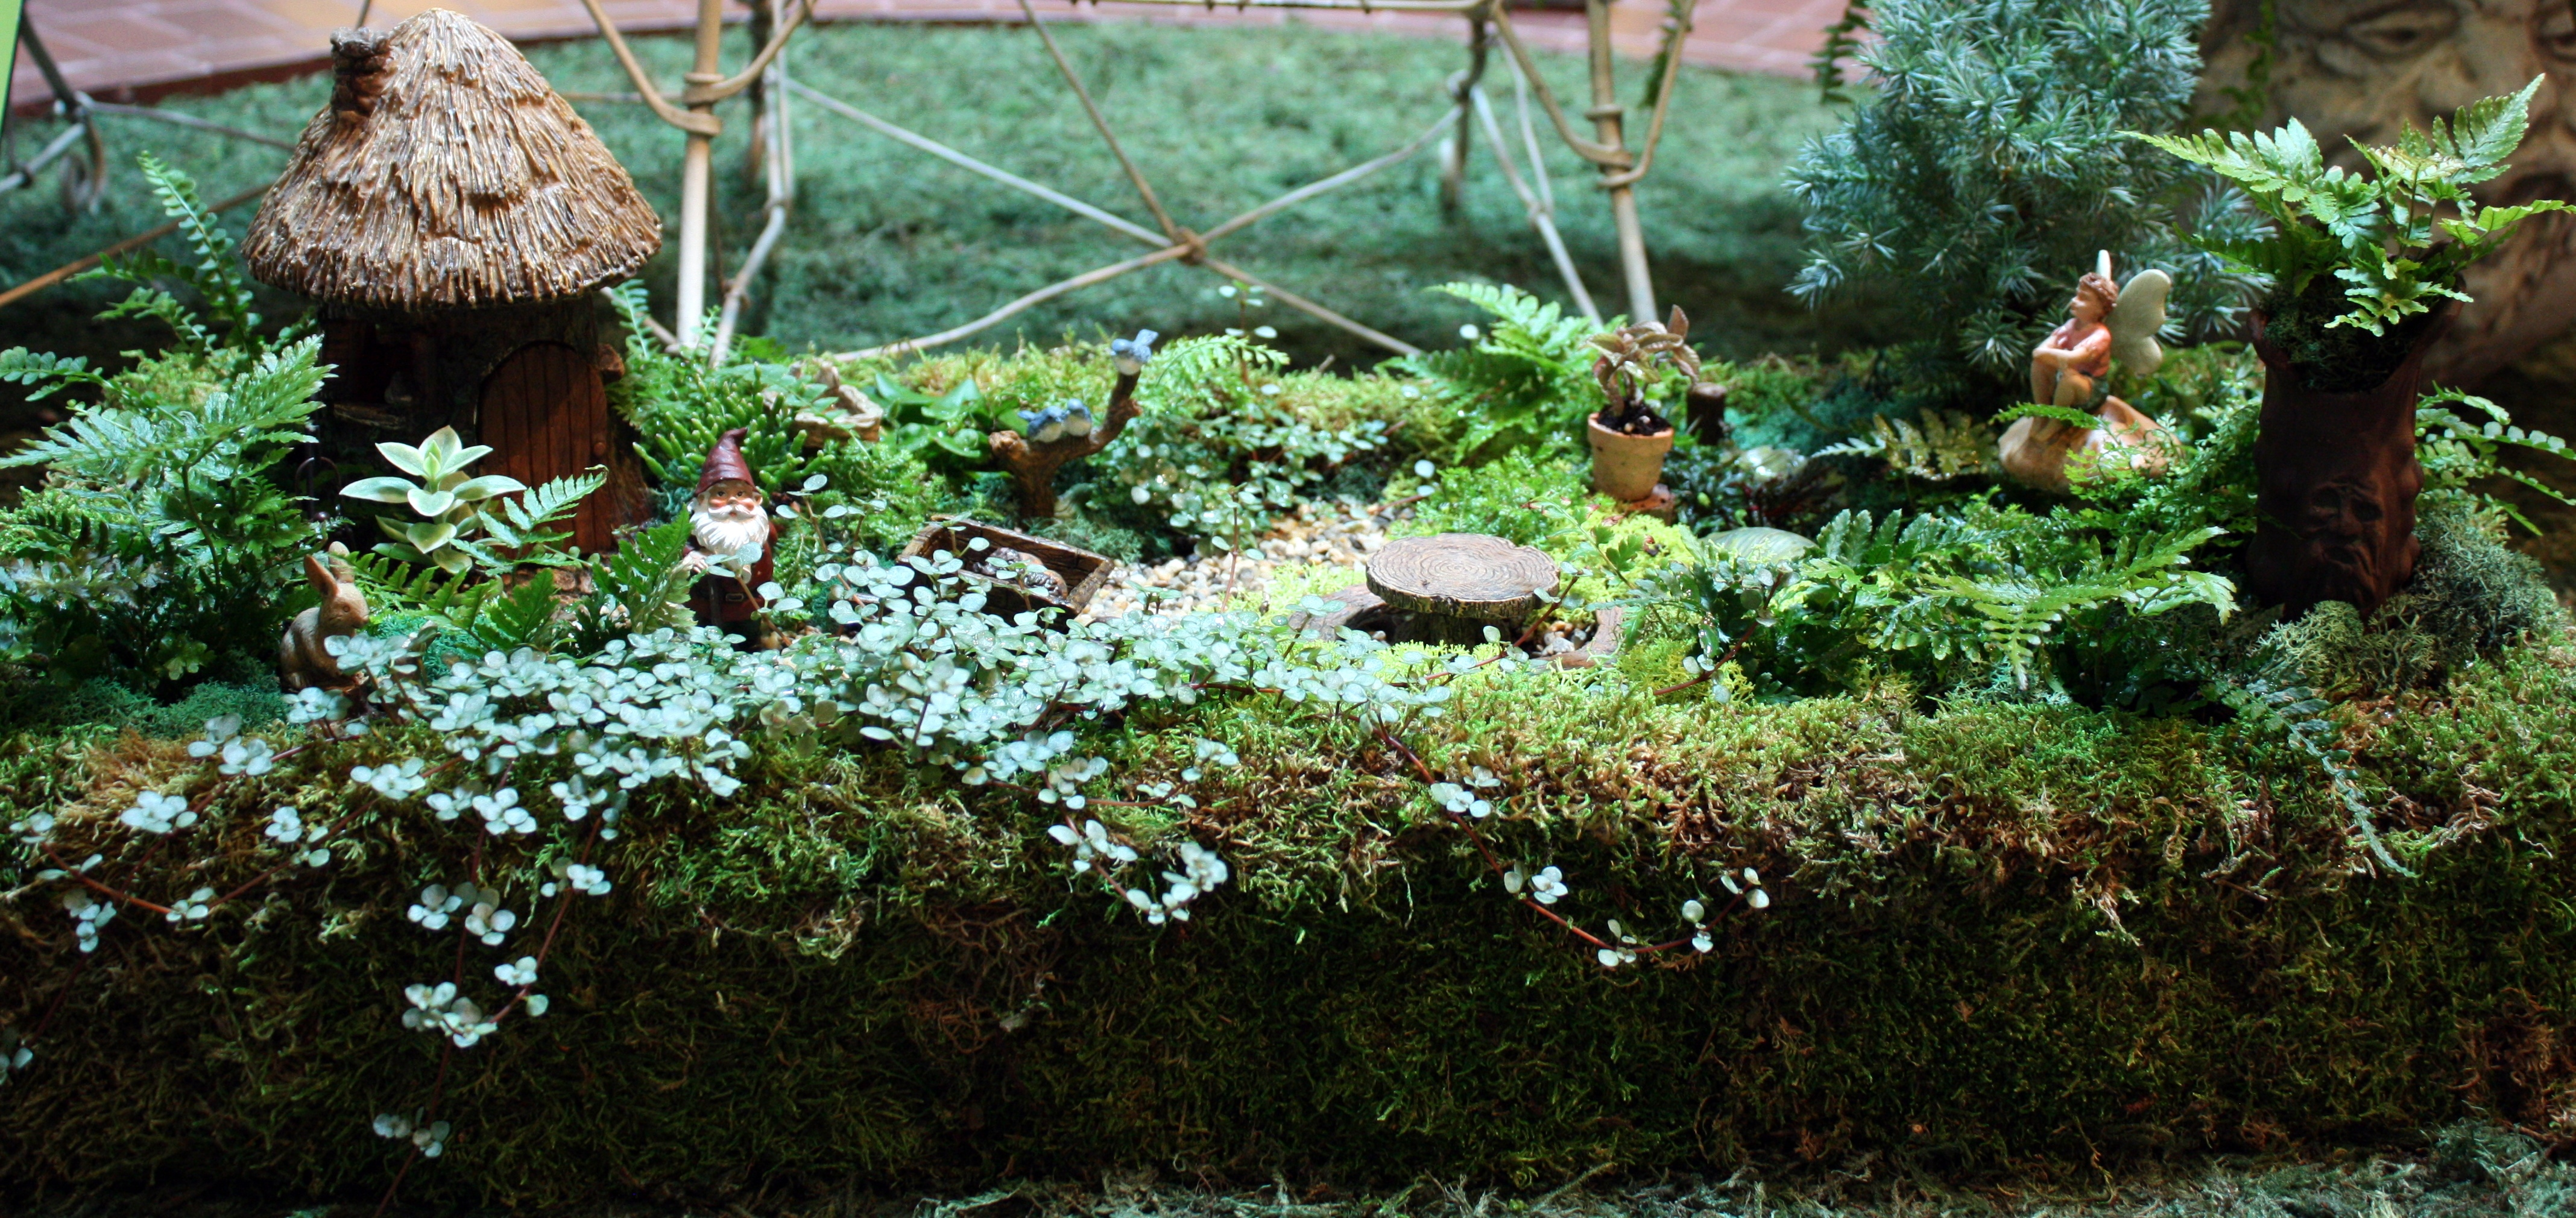 Fairy Garden Ideas For Small Spaces plants in the ripley center: design for small spaces | smithsonian